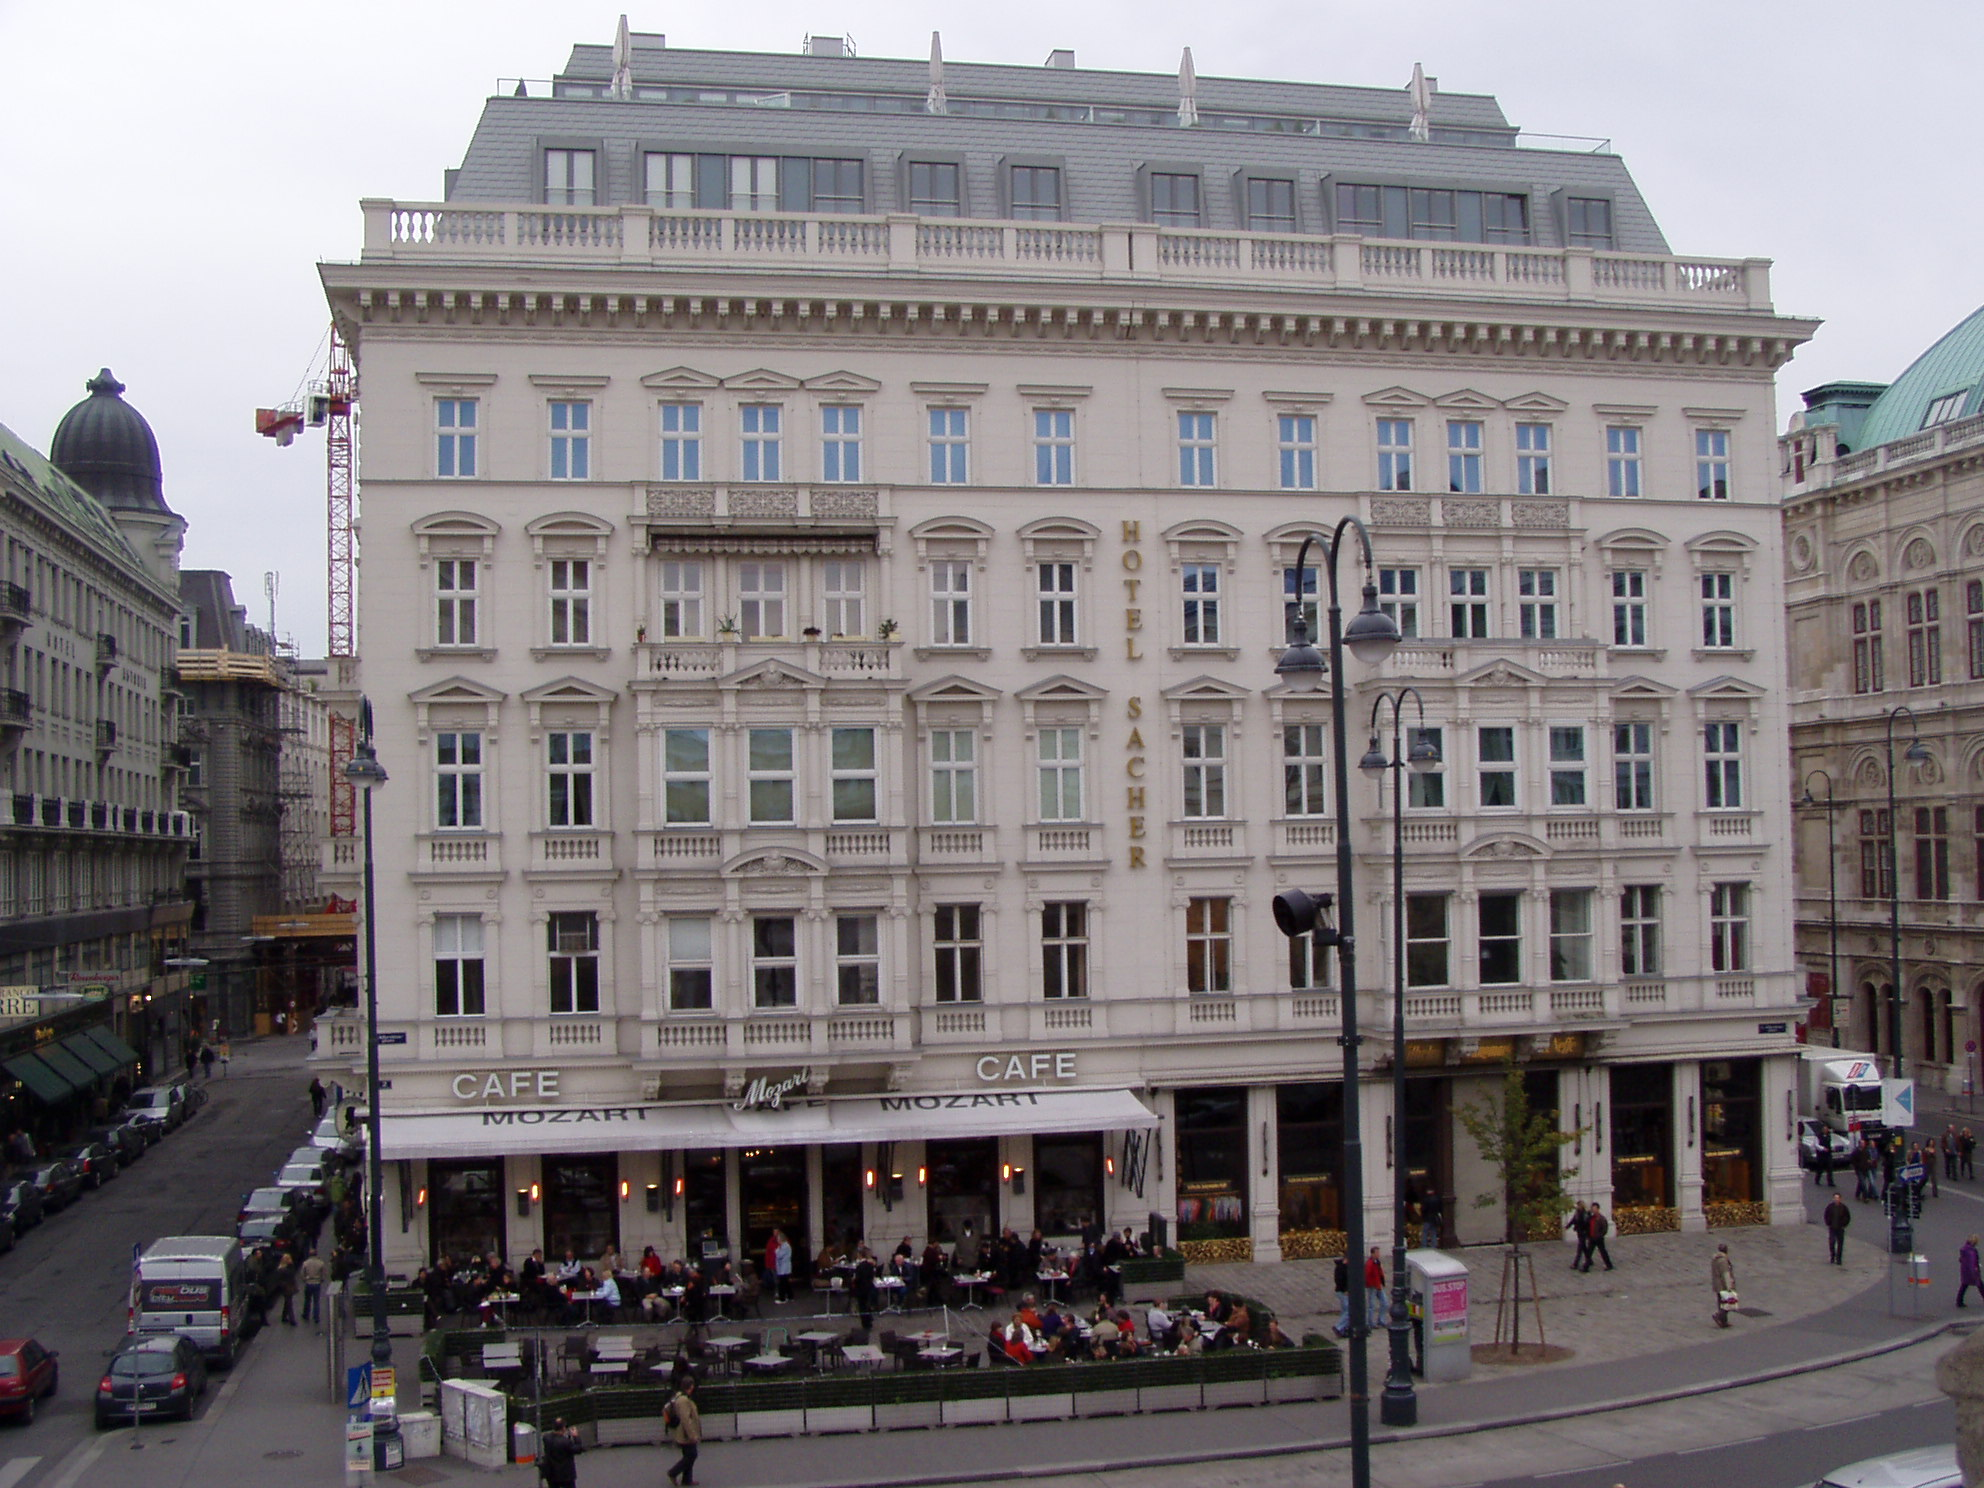 FileHotel Sacher WienJPG  Wikimedia Commons